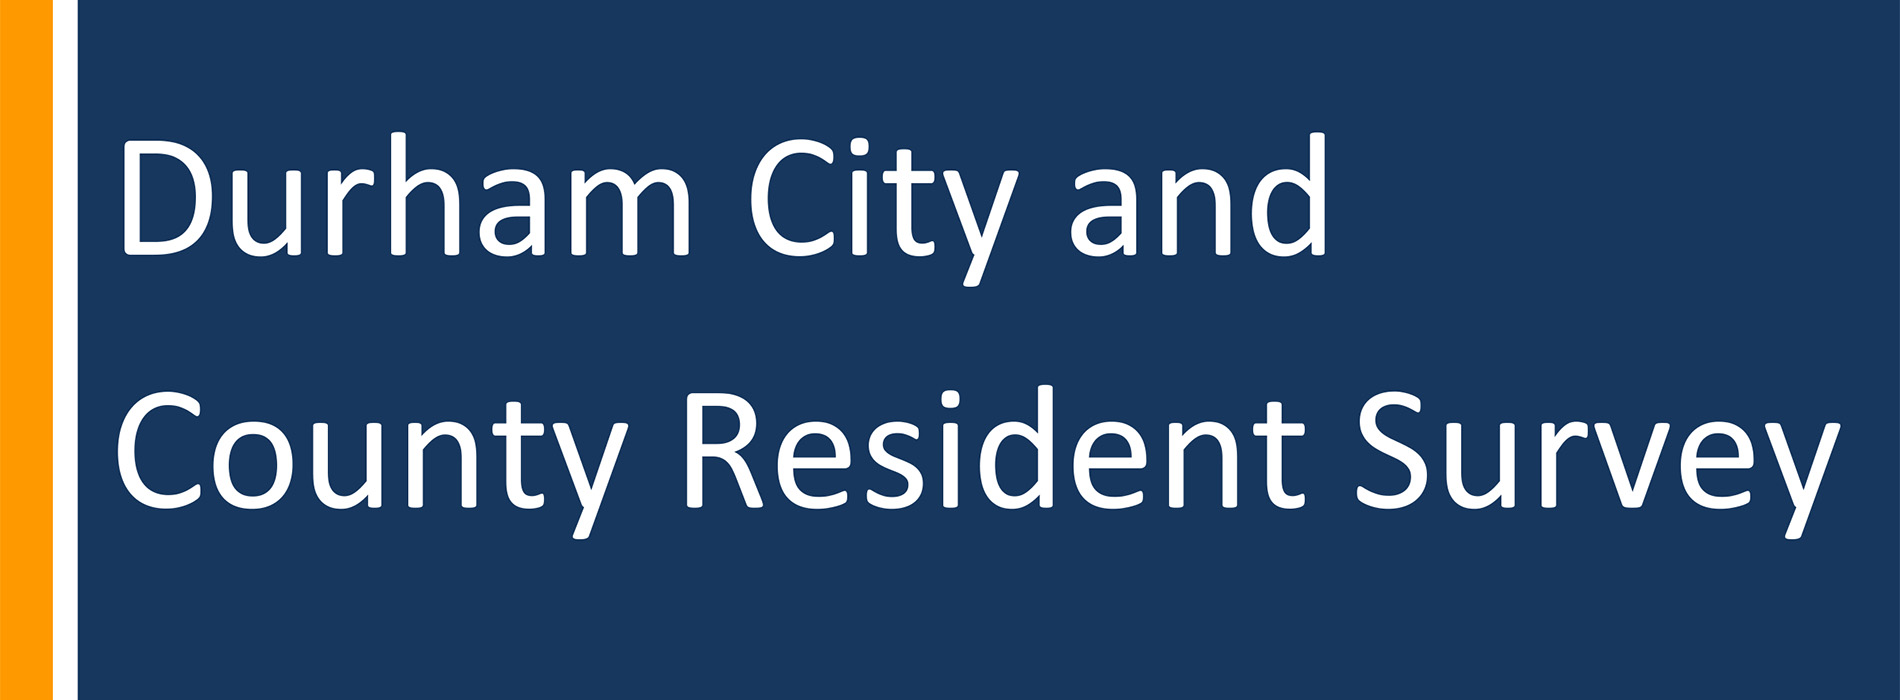 2018 Durham City and County Resident Survey Report (County)-1